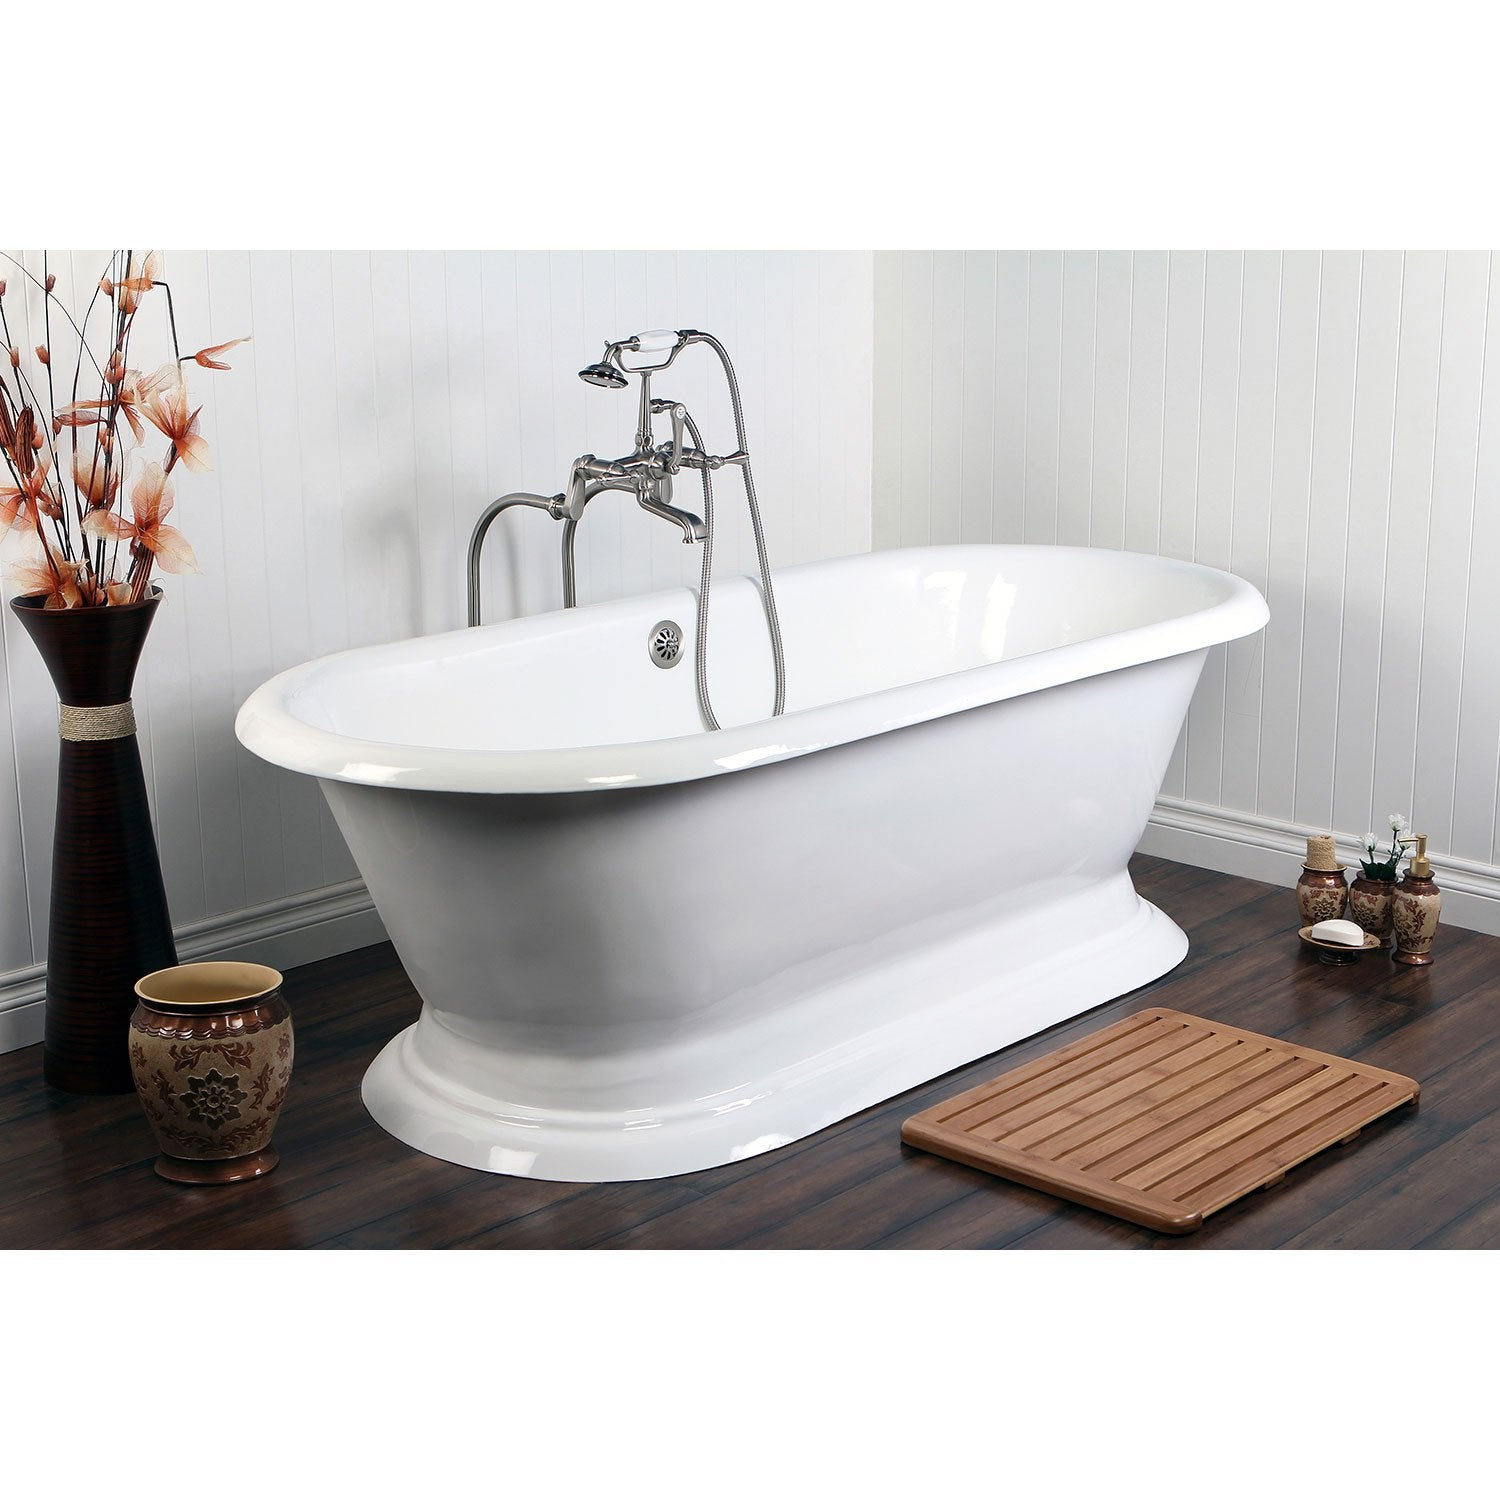 "67"" Freestanding Tub w/ Satin Nickel Tub Filler Faucet & Hardware Package CTP43"